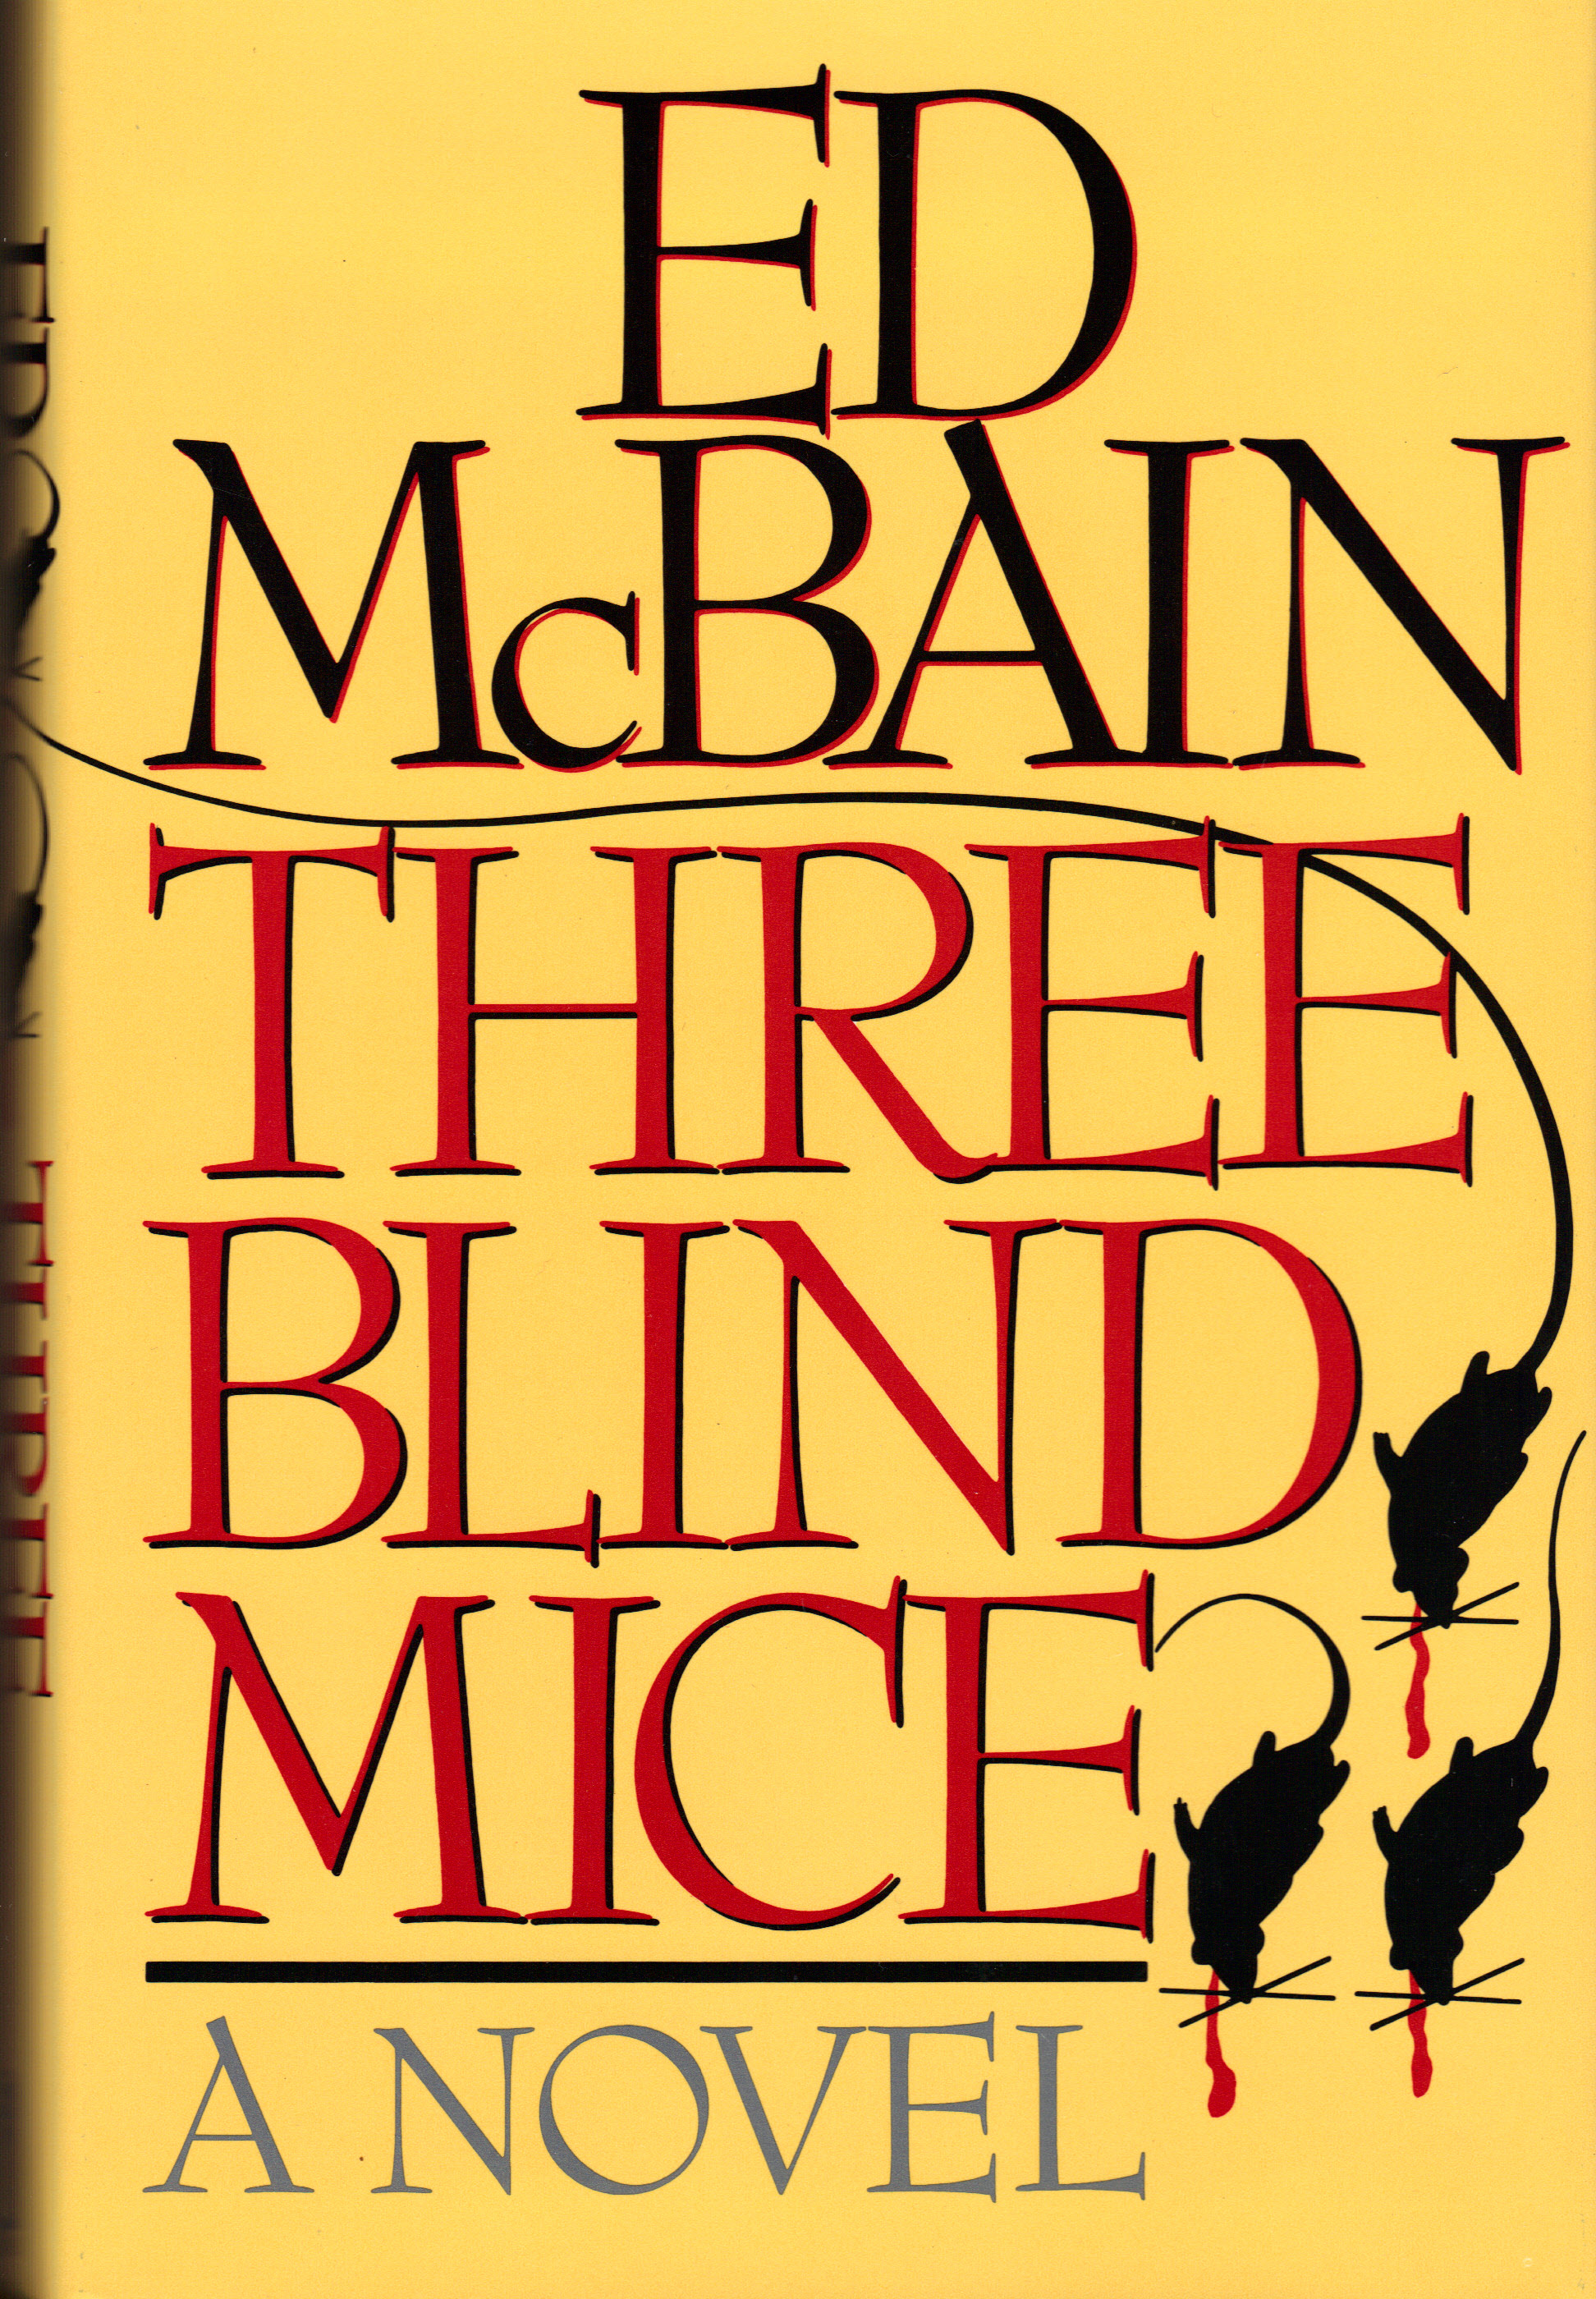 Image for THREE BLIND MICE